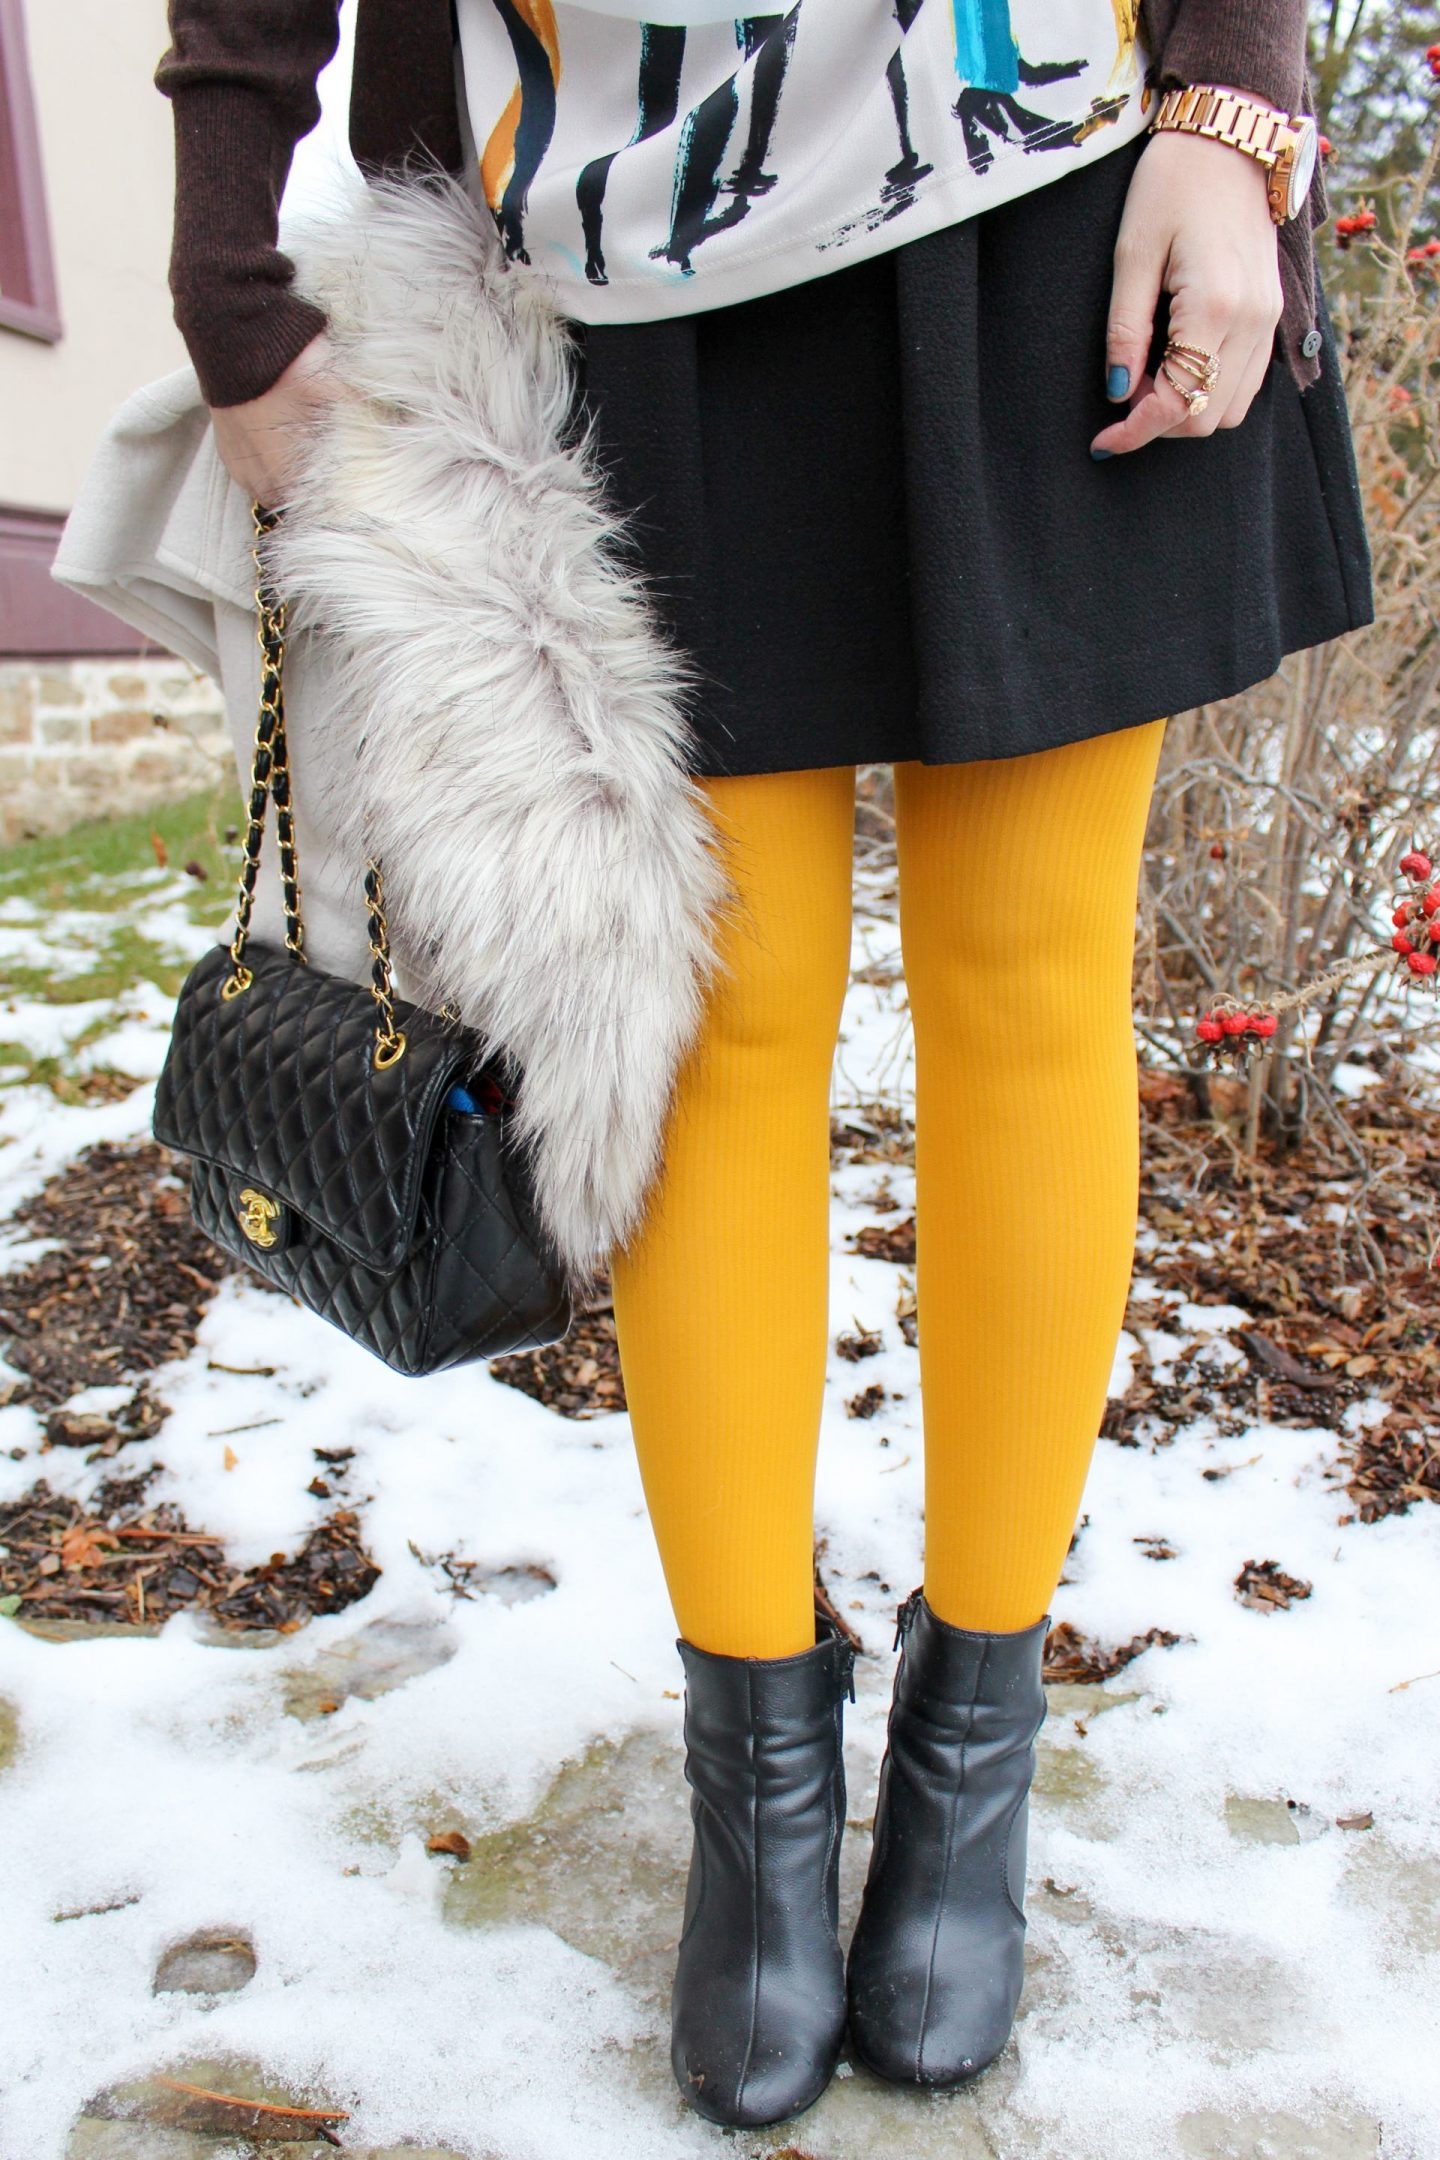 Pairing your bright tights with your everyday skirt